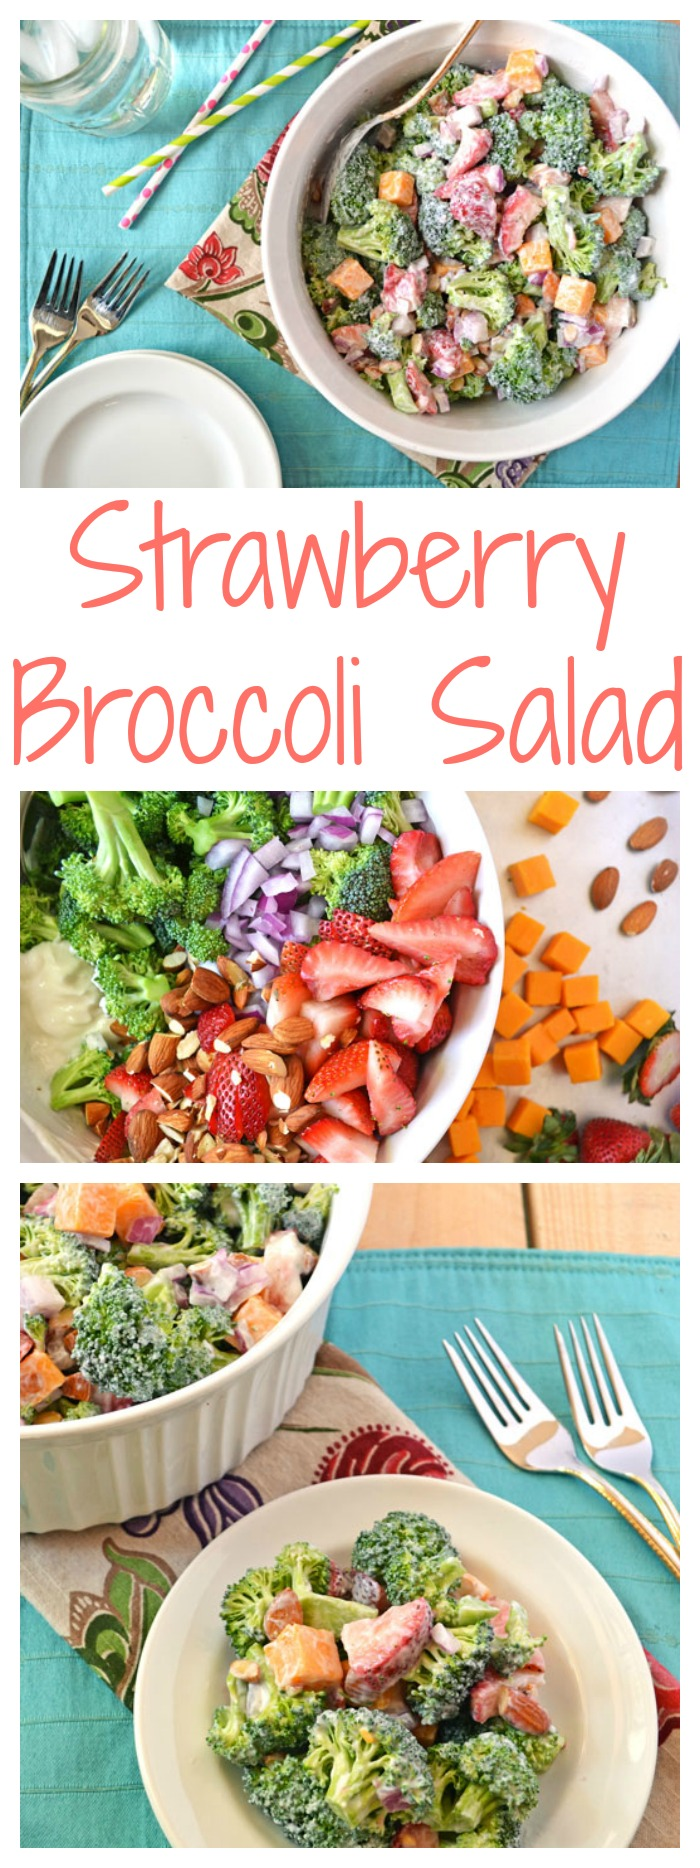 Strawberry Broccoli Salad // Well-Plated